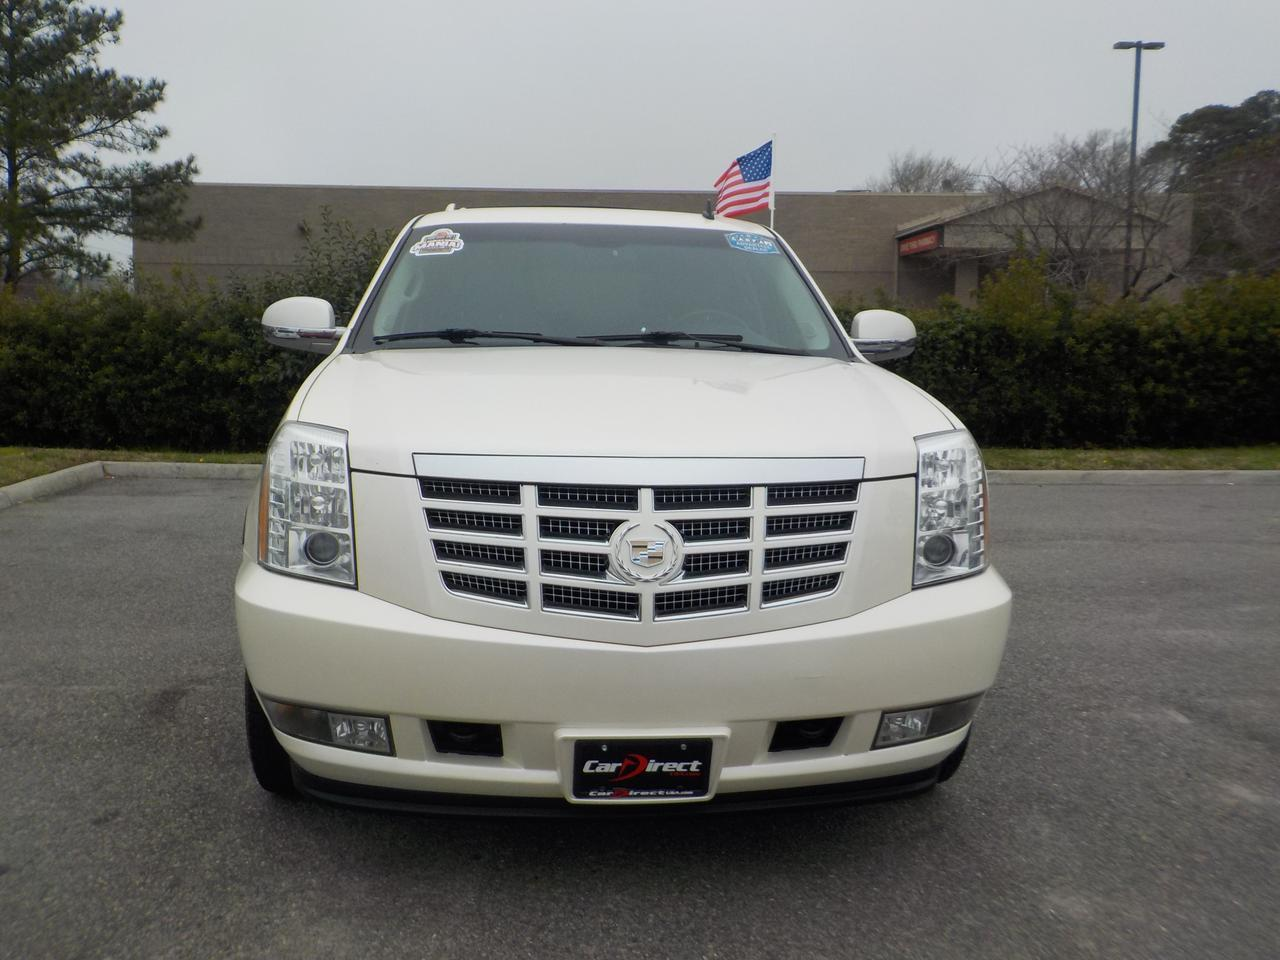 2010 CADILLAC ESCALADE AWD, LEATHER, 3RD ROW SEAT, BOSE SPEAKERS, DVD, NAVIGATION, TOW PKG, REMOTE START, LOW MILES! Virginia Beach VA